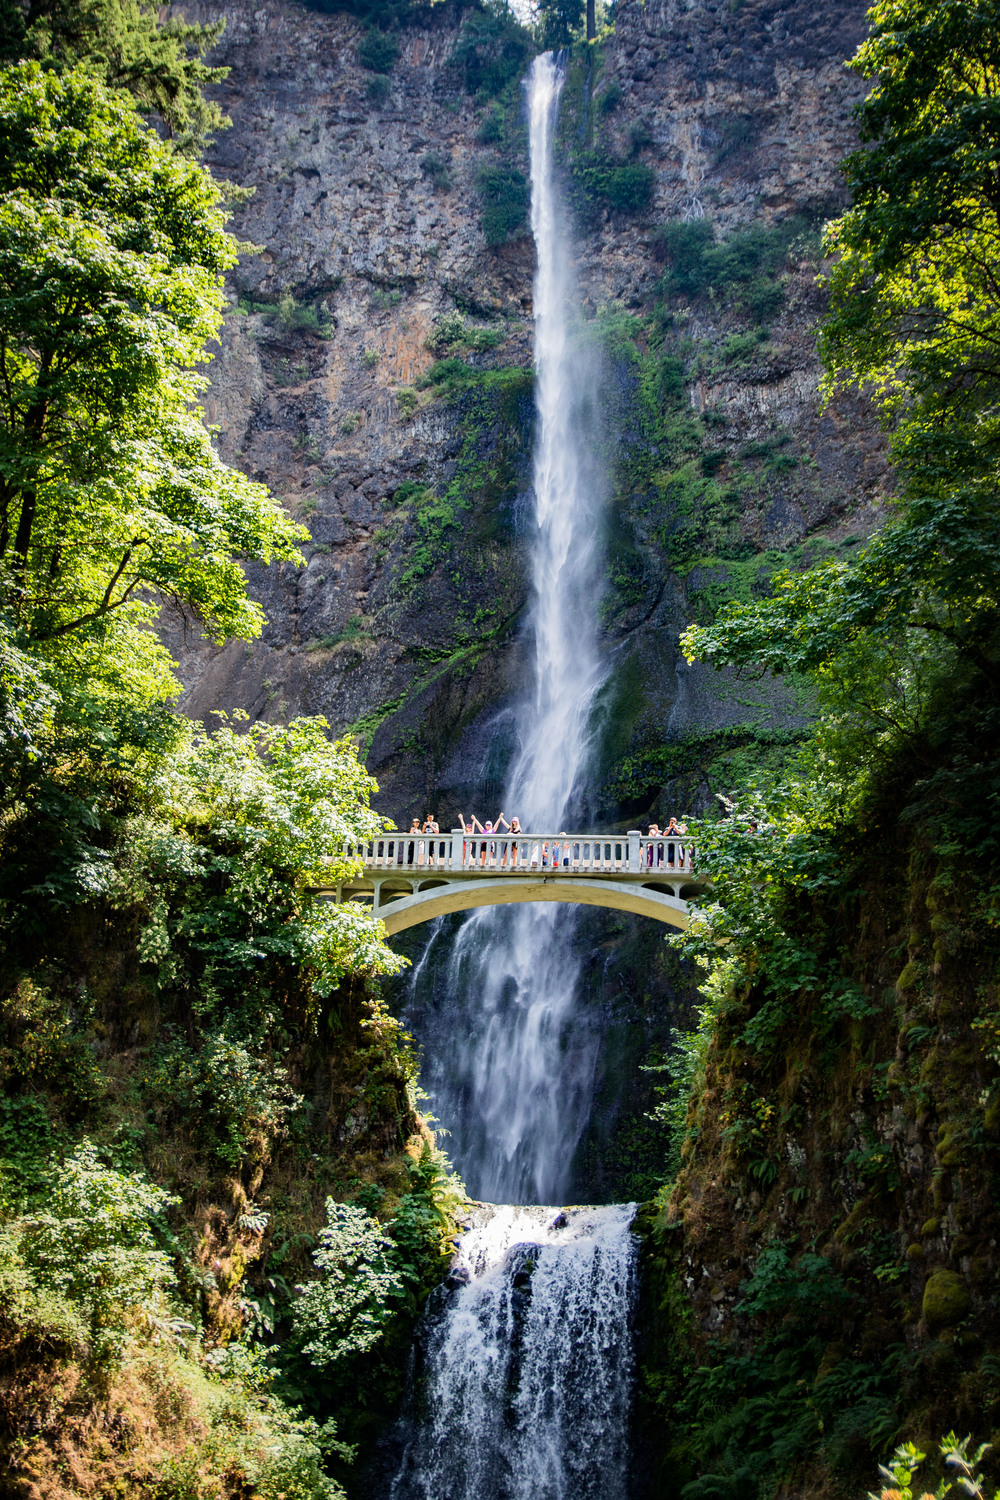 Multnomah Falls, Columbia River Gorge Area, OR. Kim, Mag and MK are on the bridge with their hands raised.